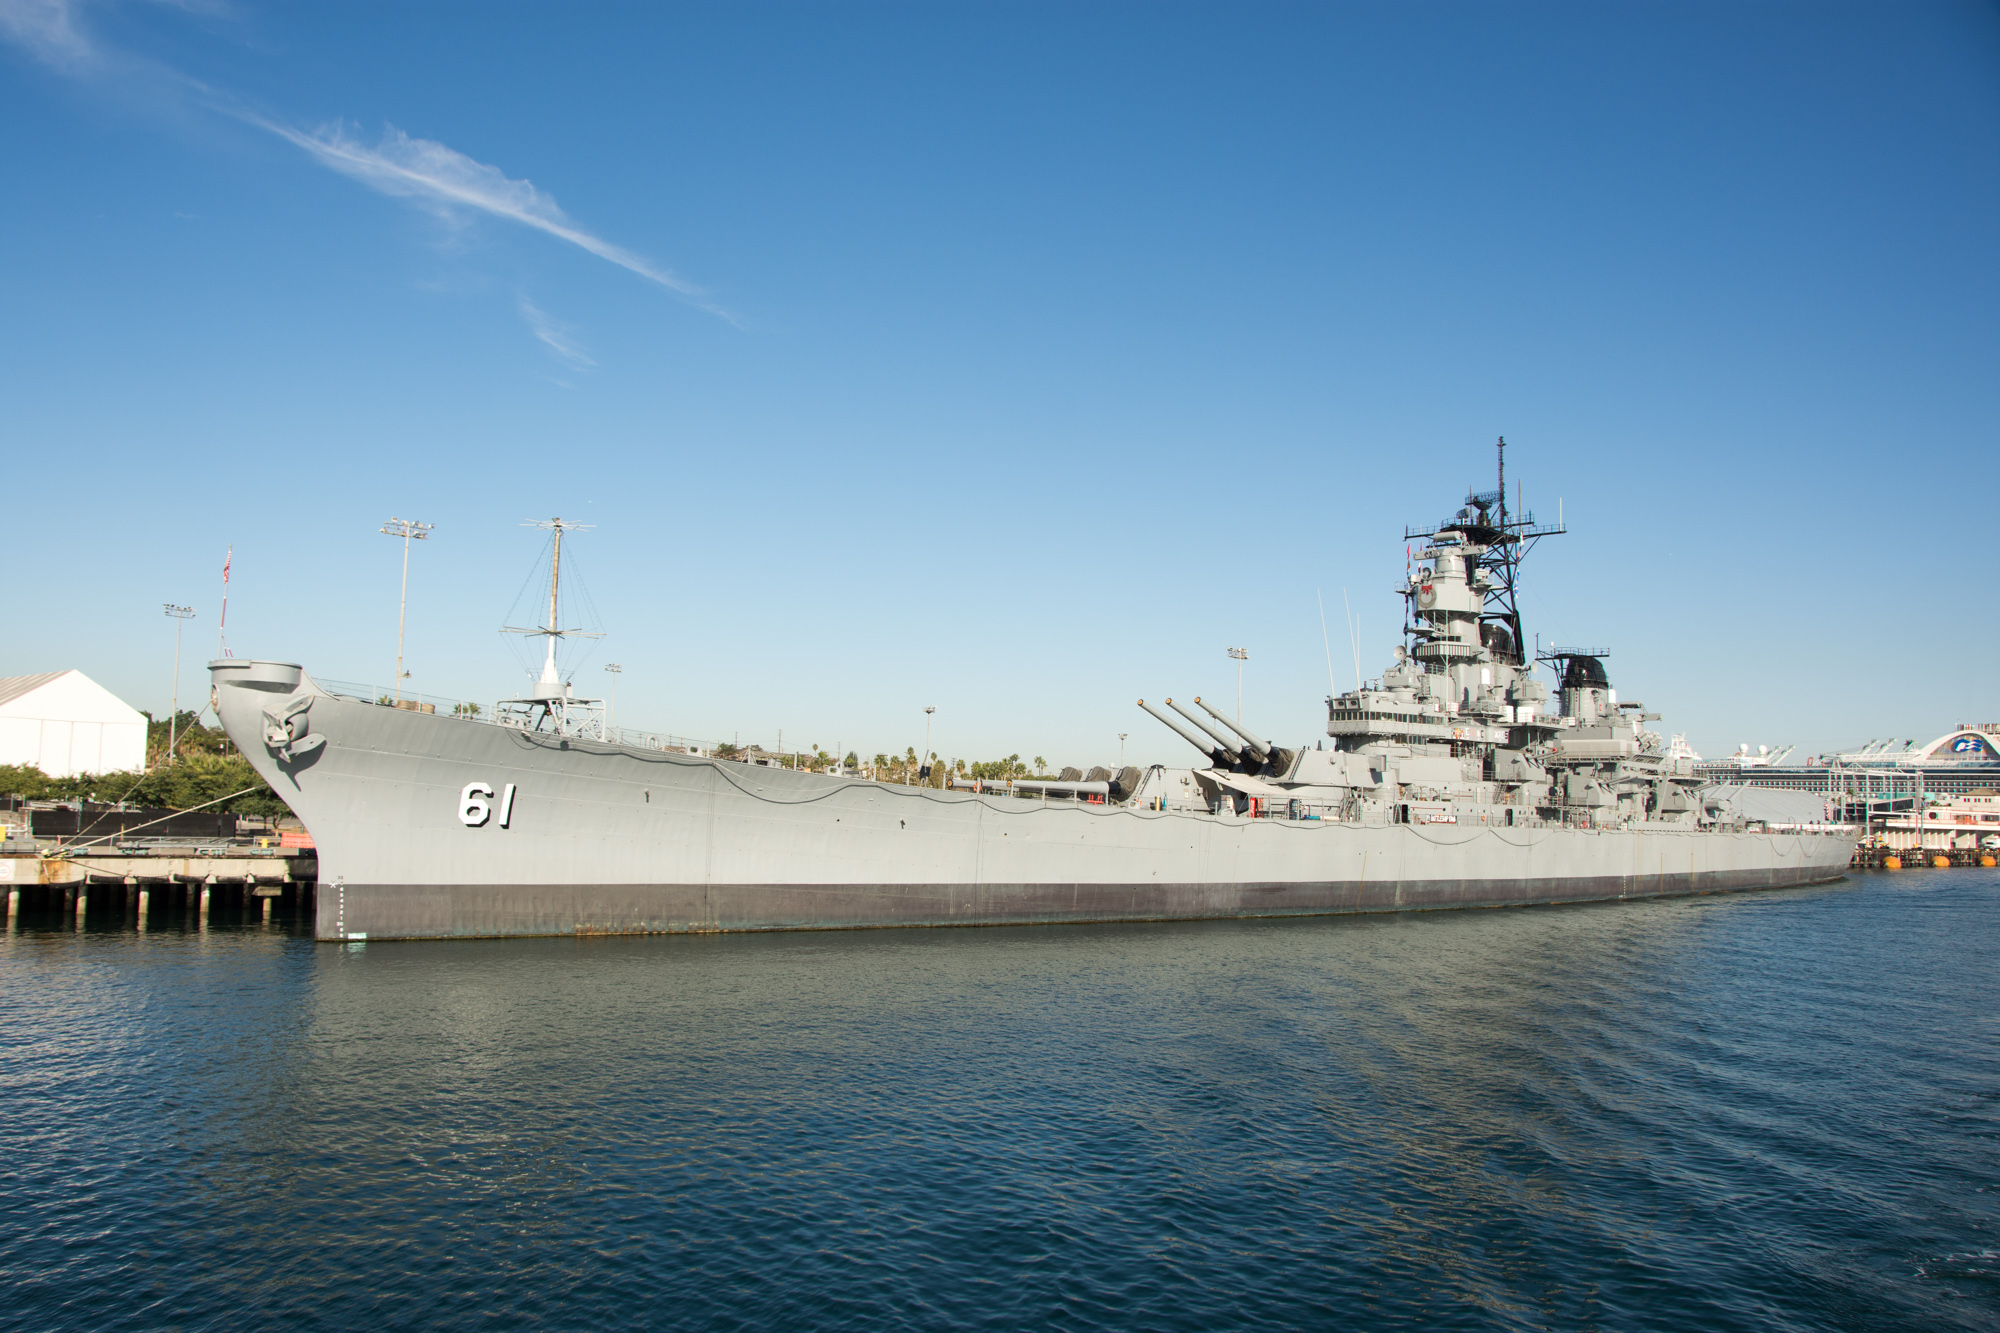 USS Iowa is now a museum